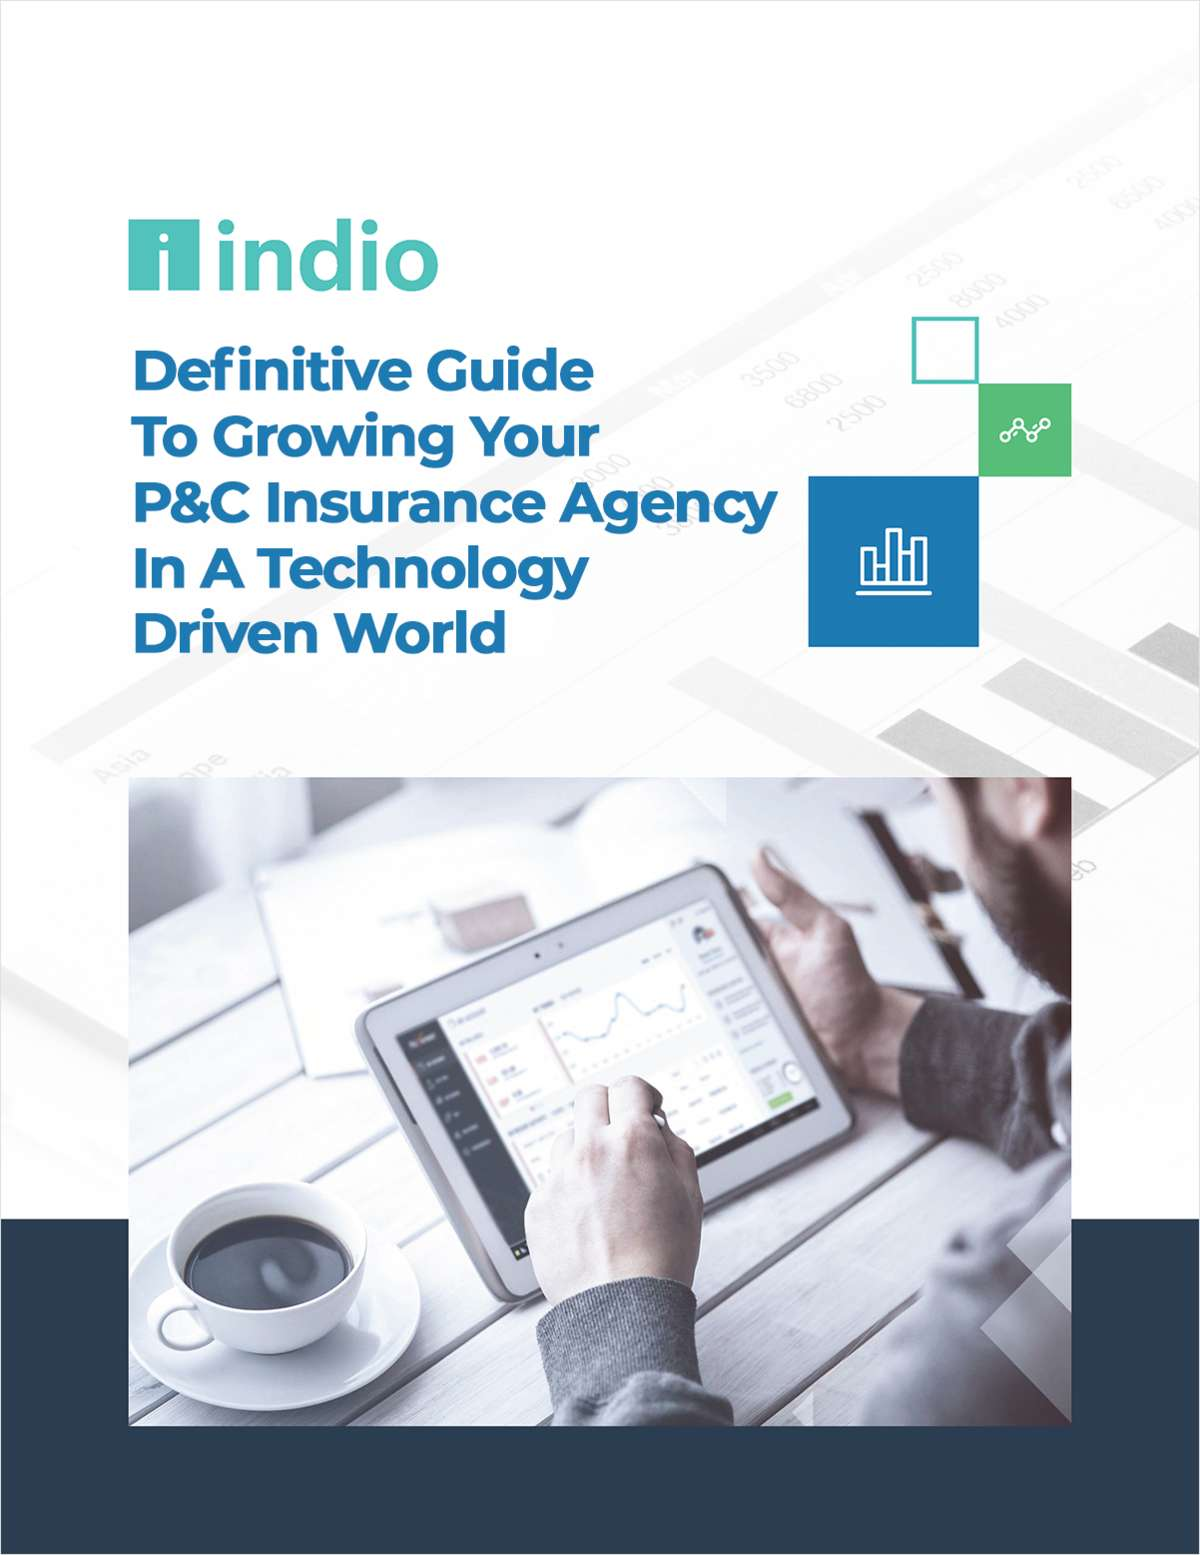 Definitive Guide To Growing Your P&C Insurance Agency In A Technology Driven World